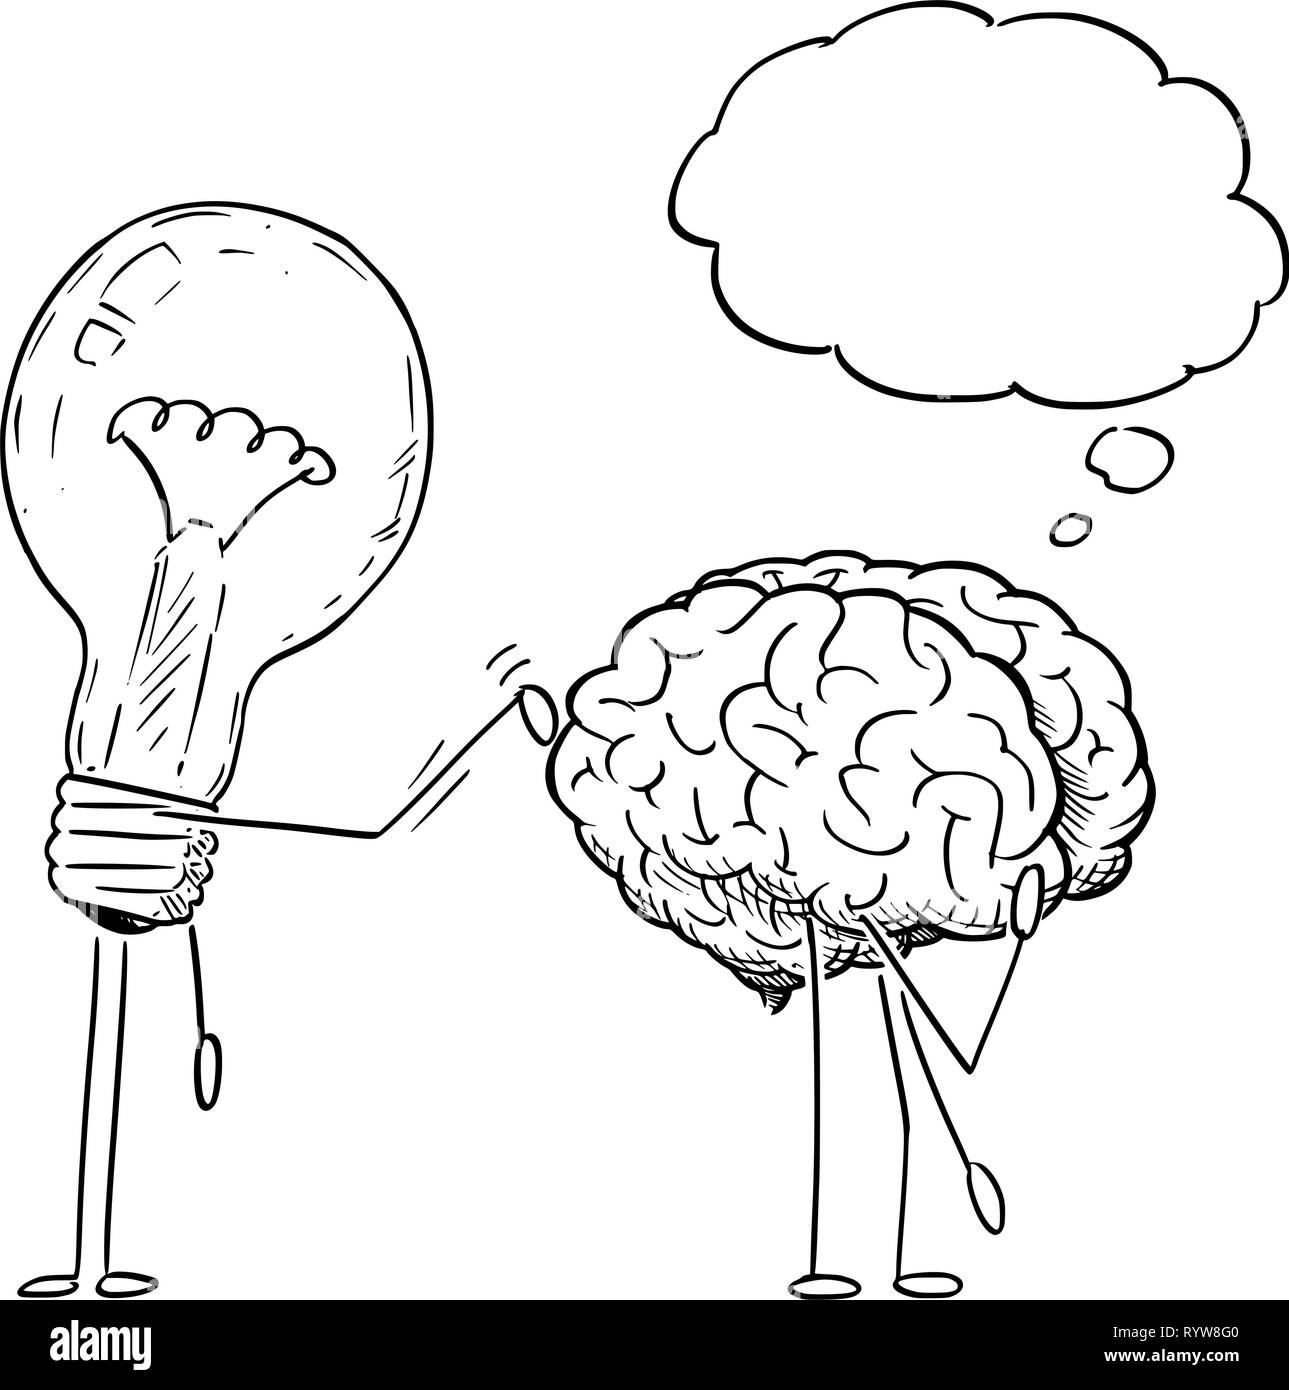 Cartoon Drawing of Lightbulb Characters Taping on Back of Thinking Brain - Stock Image